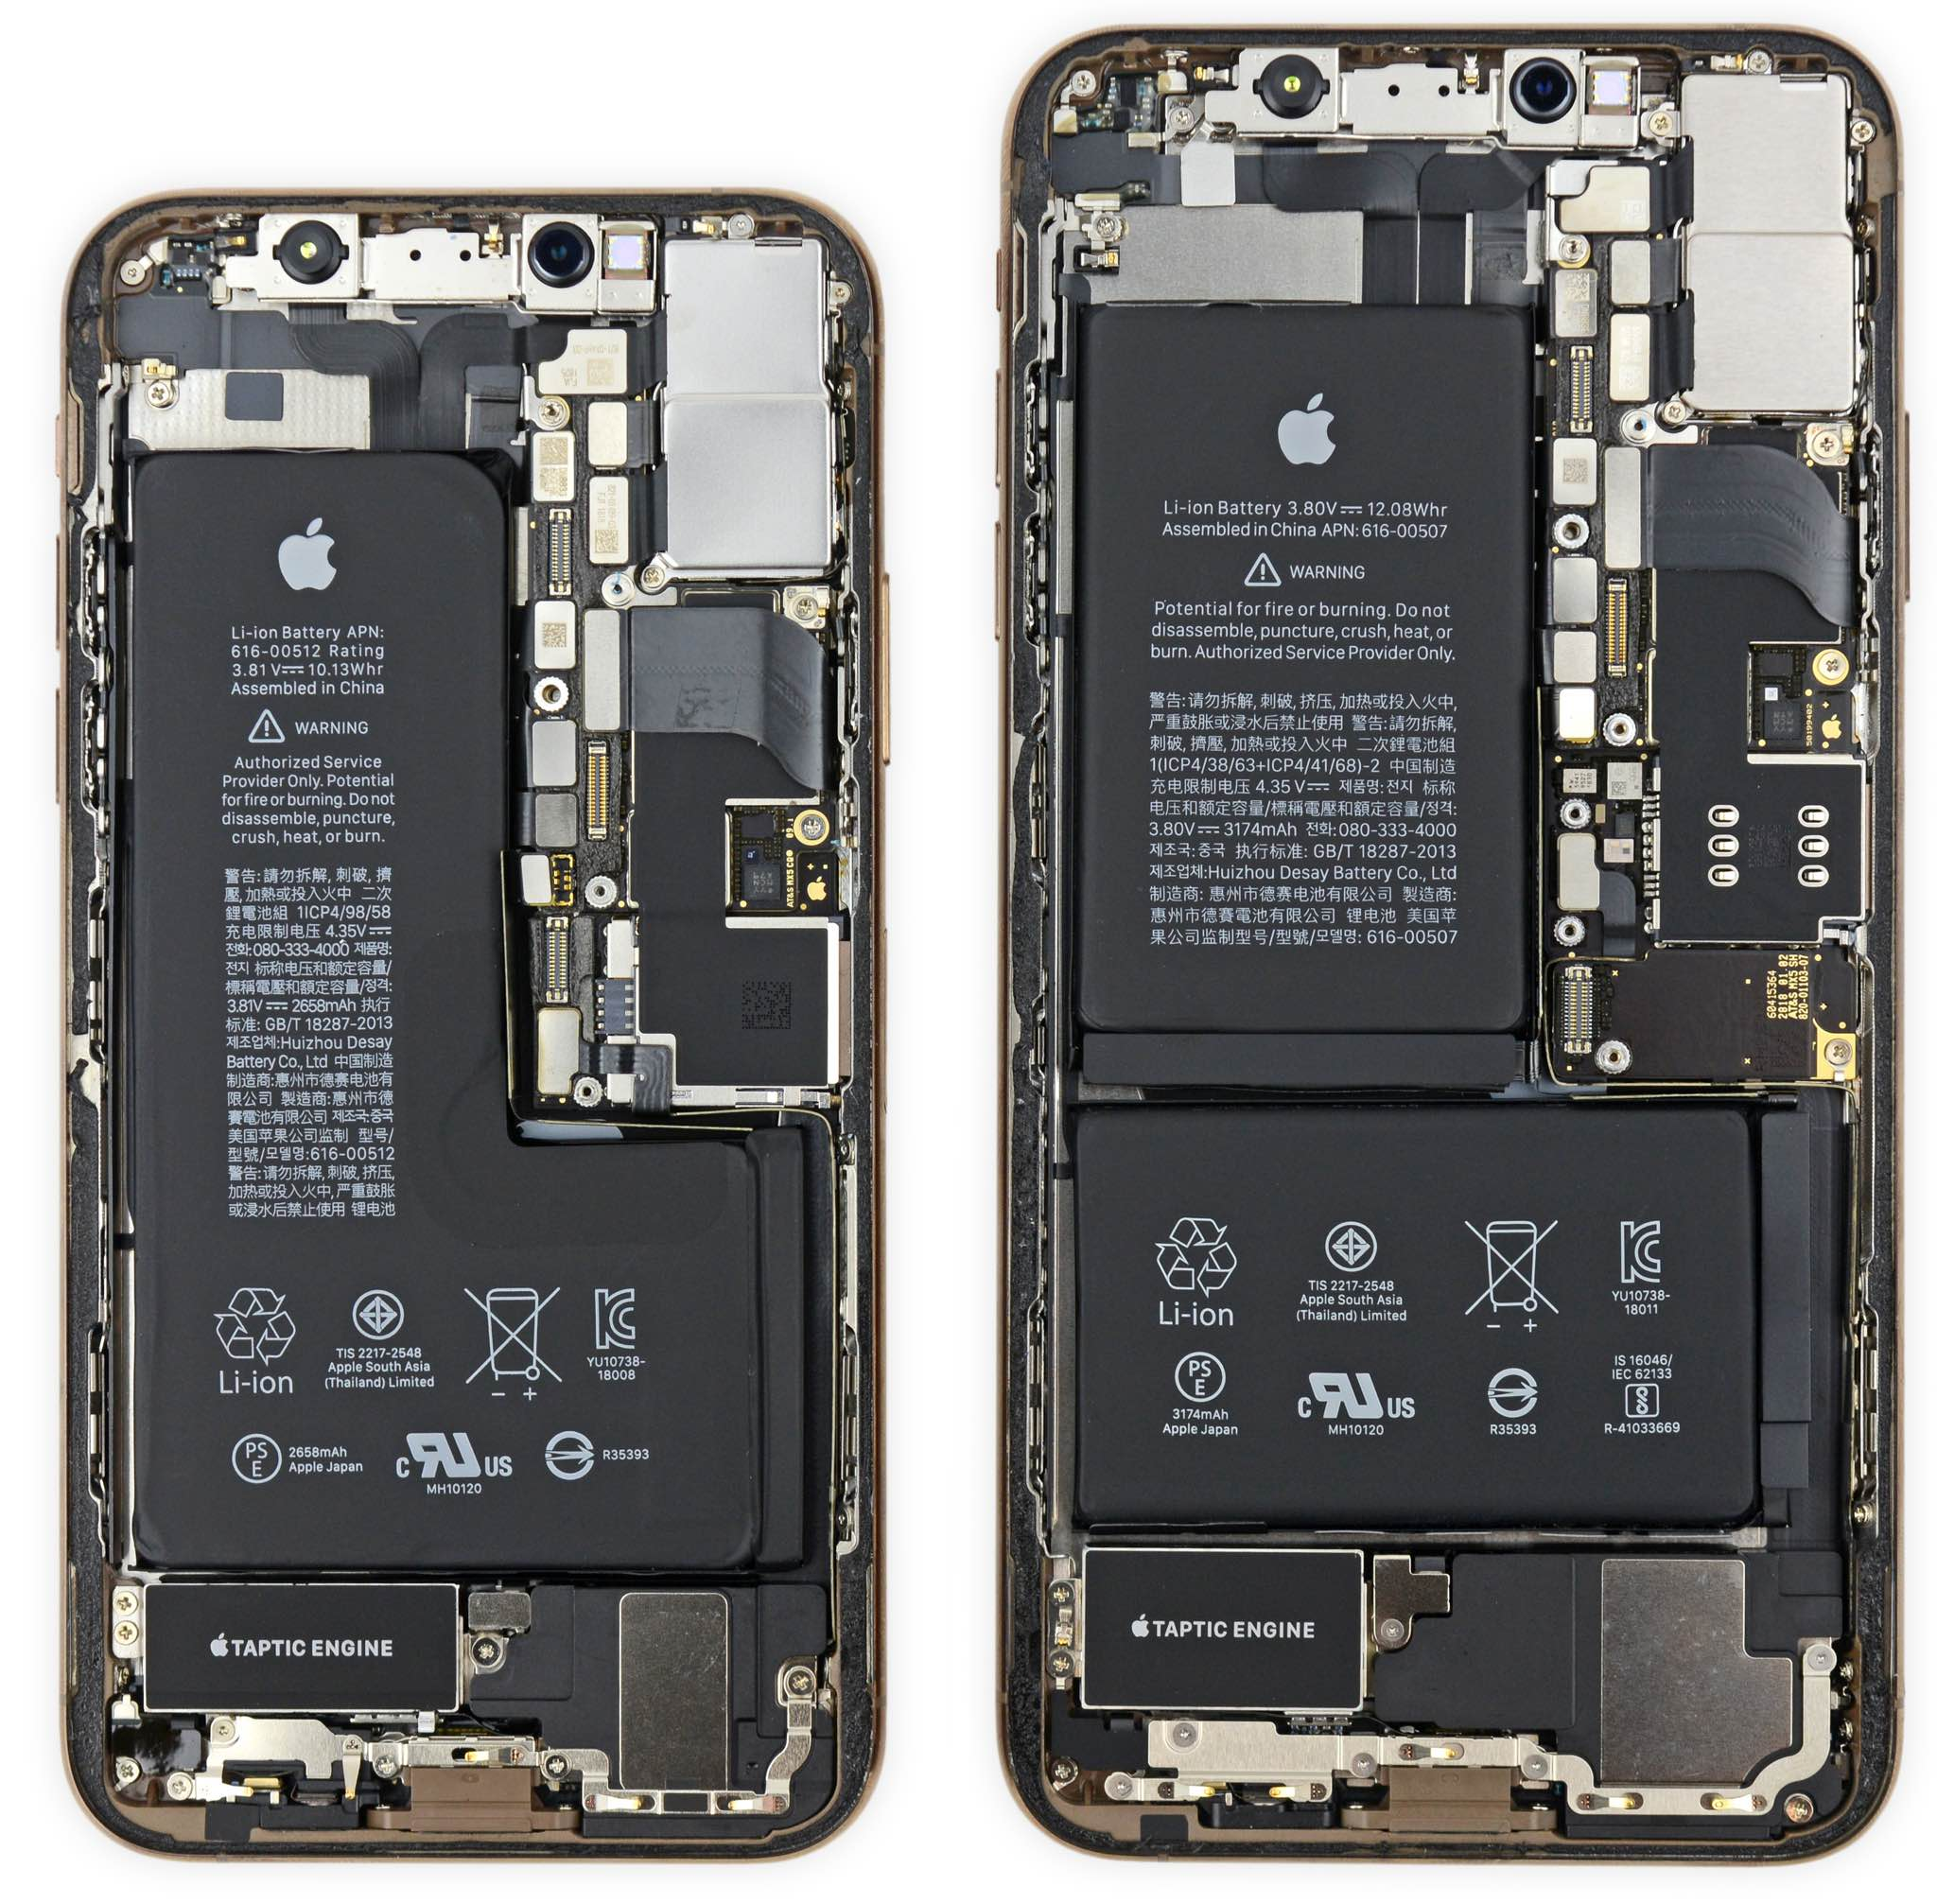 iPhone XS and iPhone XS Max logic board images courtesy of iFixit